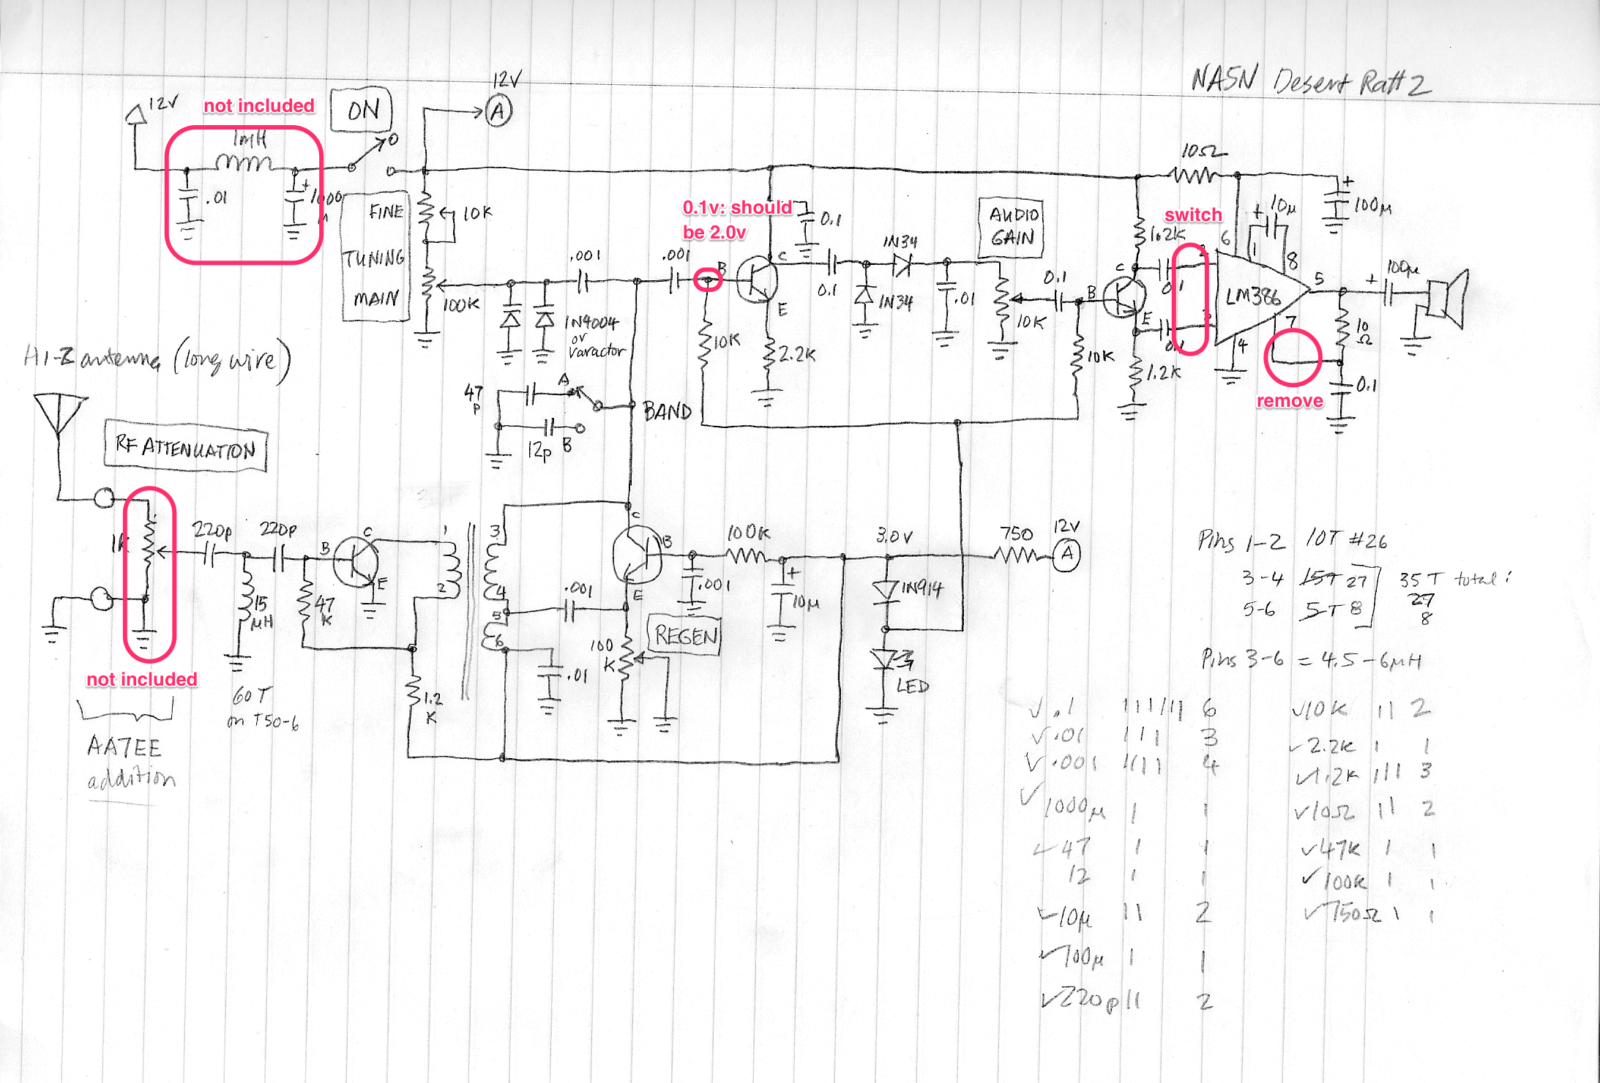 Electronics Intellectual Curiosity Page 2 Regen Radio Circuit My Schematic Drawing For The First Build Of Desert Ratt